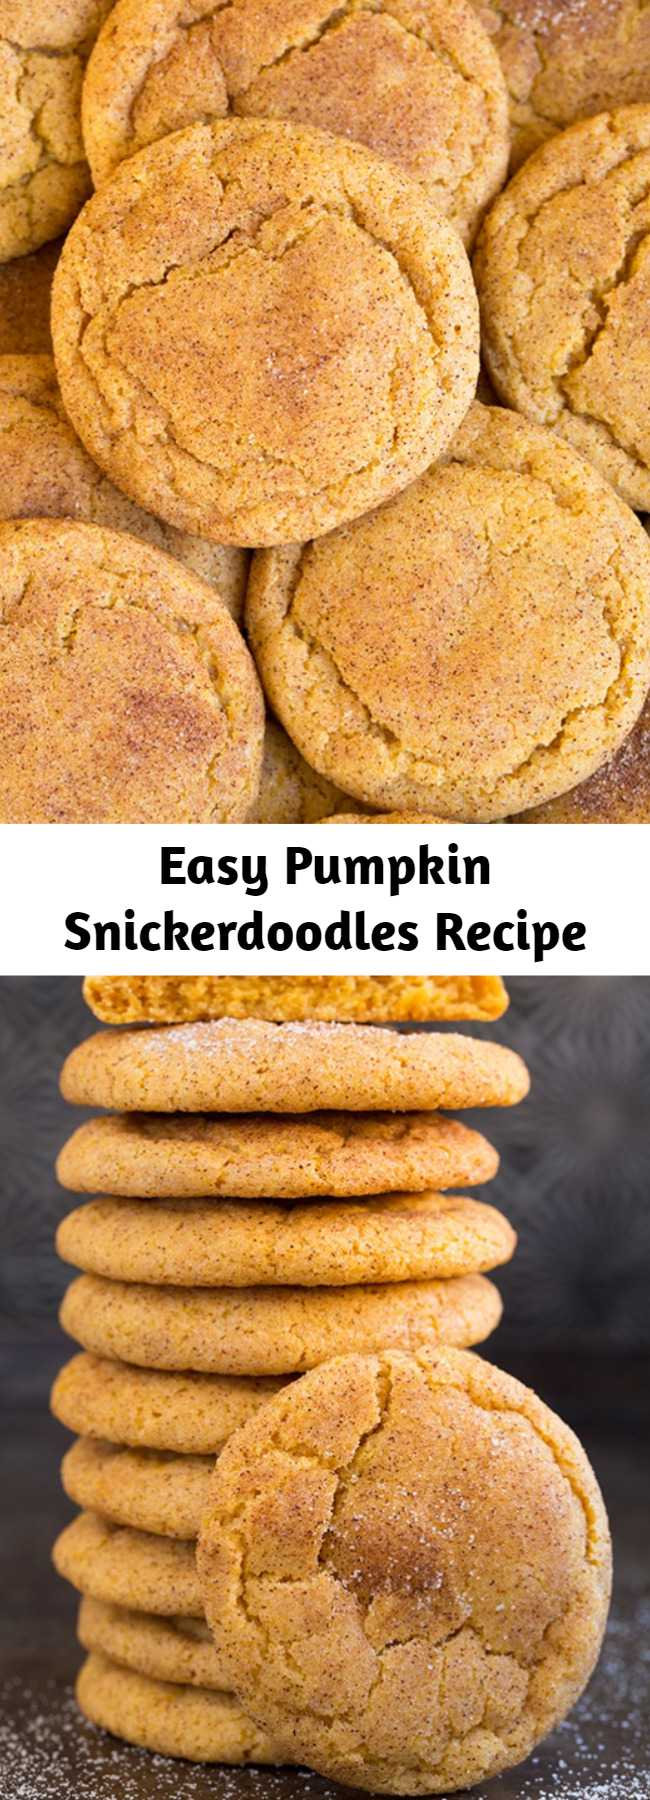 Easy Pumpkin Snickerdoodles Recipe - Easy and Irresistible pumpkin Snickerdoodles. Two of the worlds best cookies in one! Soft and tender and deliciously flavorful!